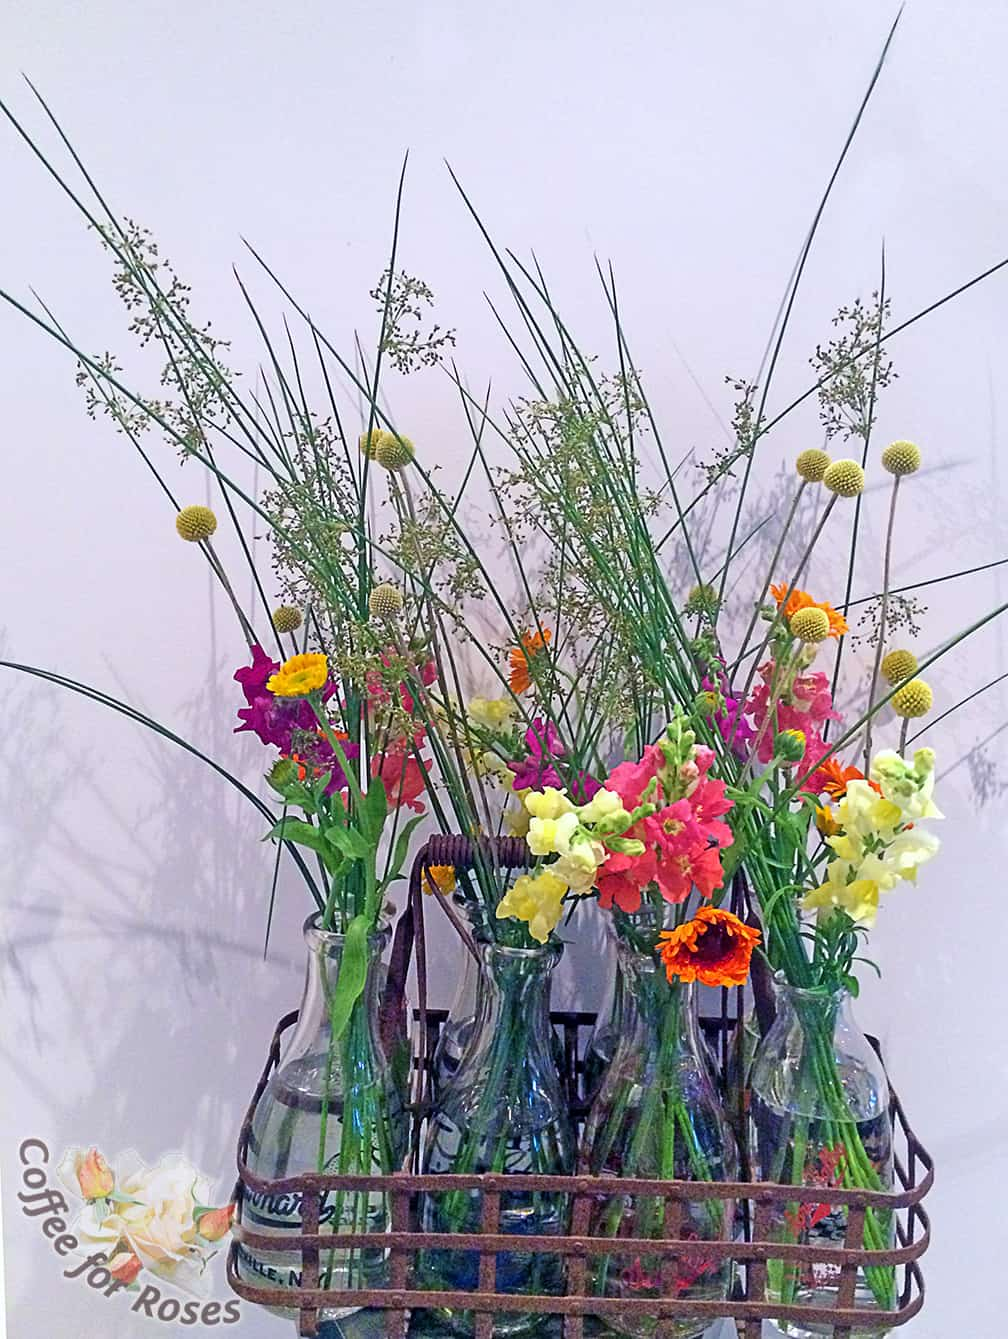 I put together a few arrangements before the wedding day too. I love how the rush (Juncus) looks in this milk-bottle display.